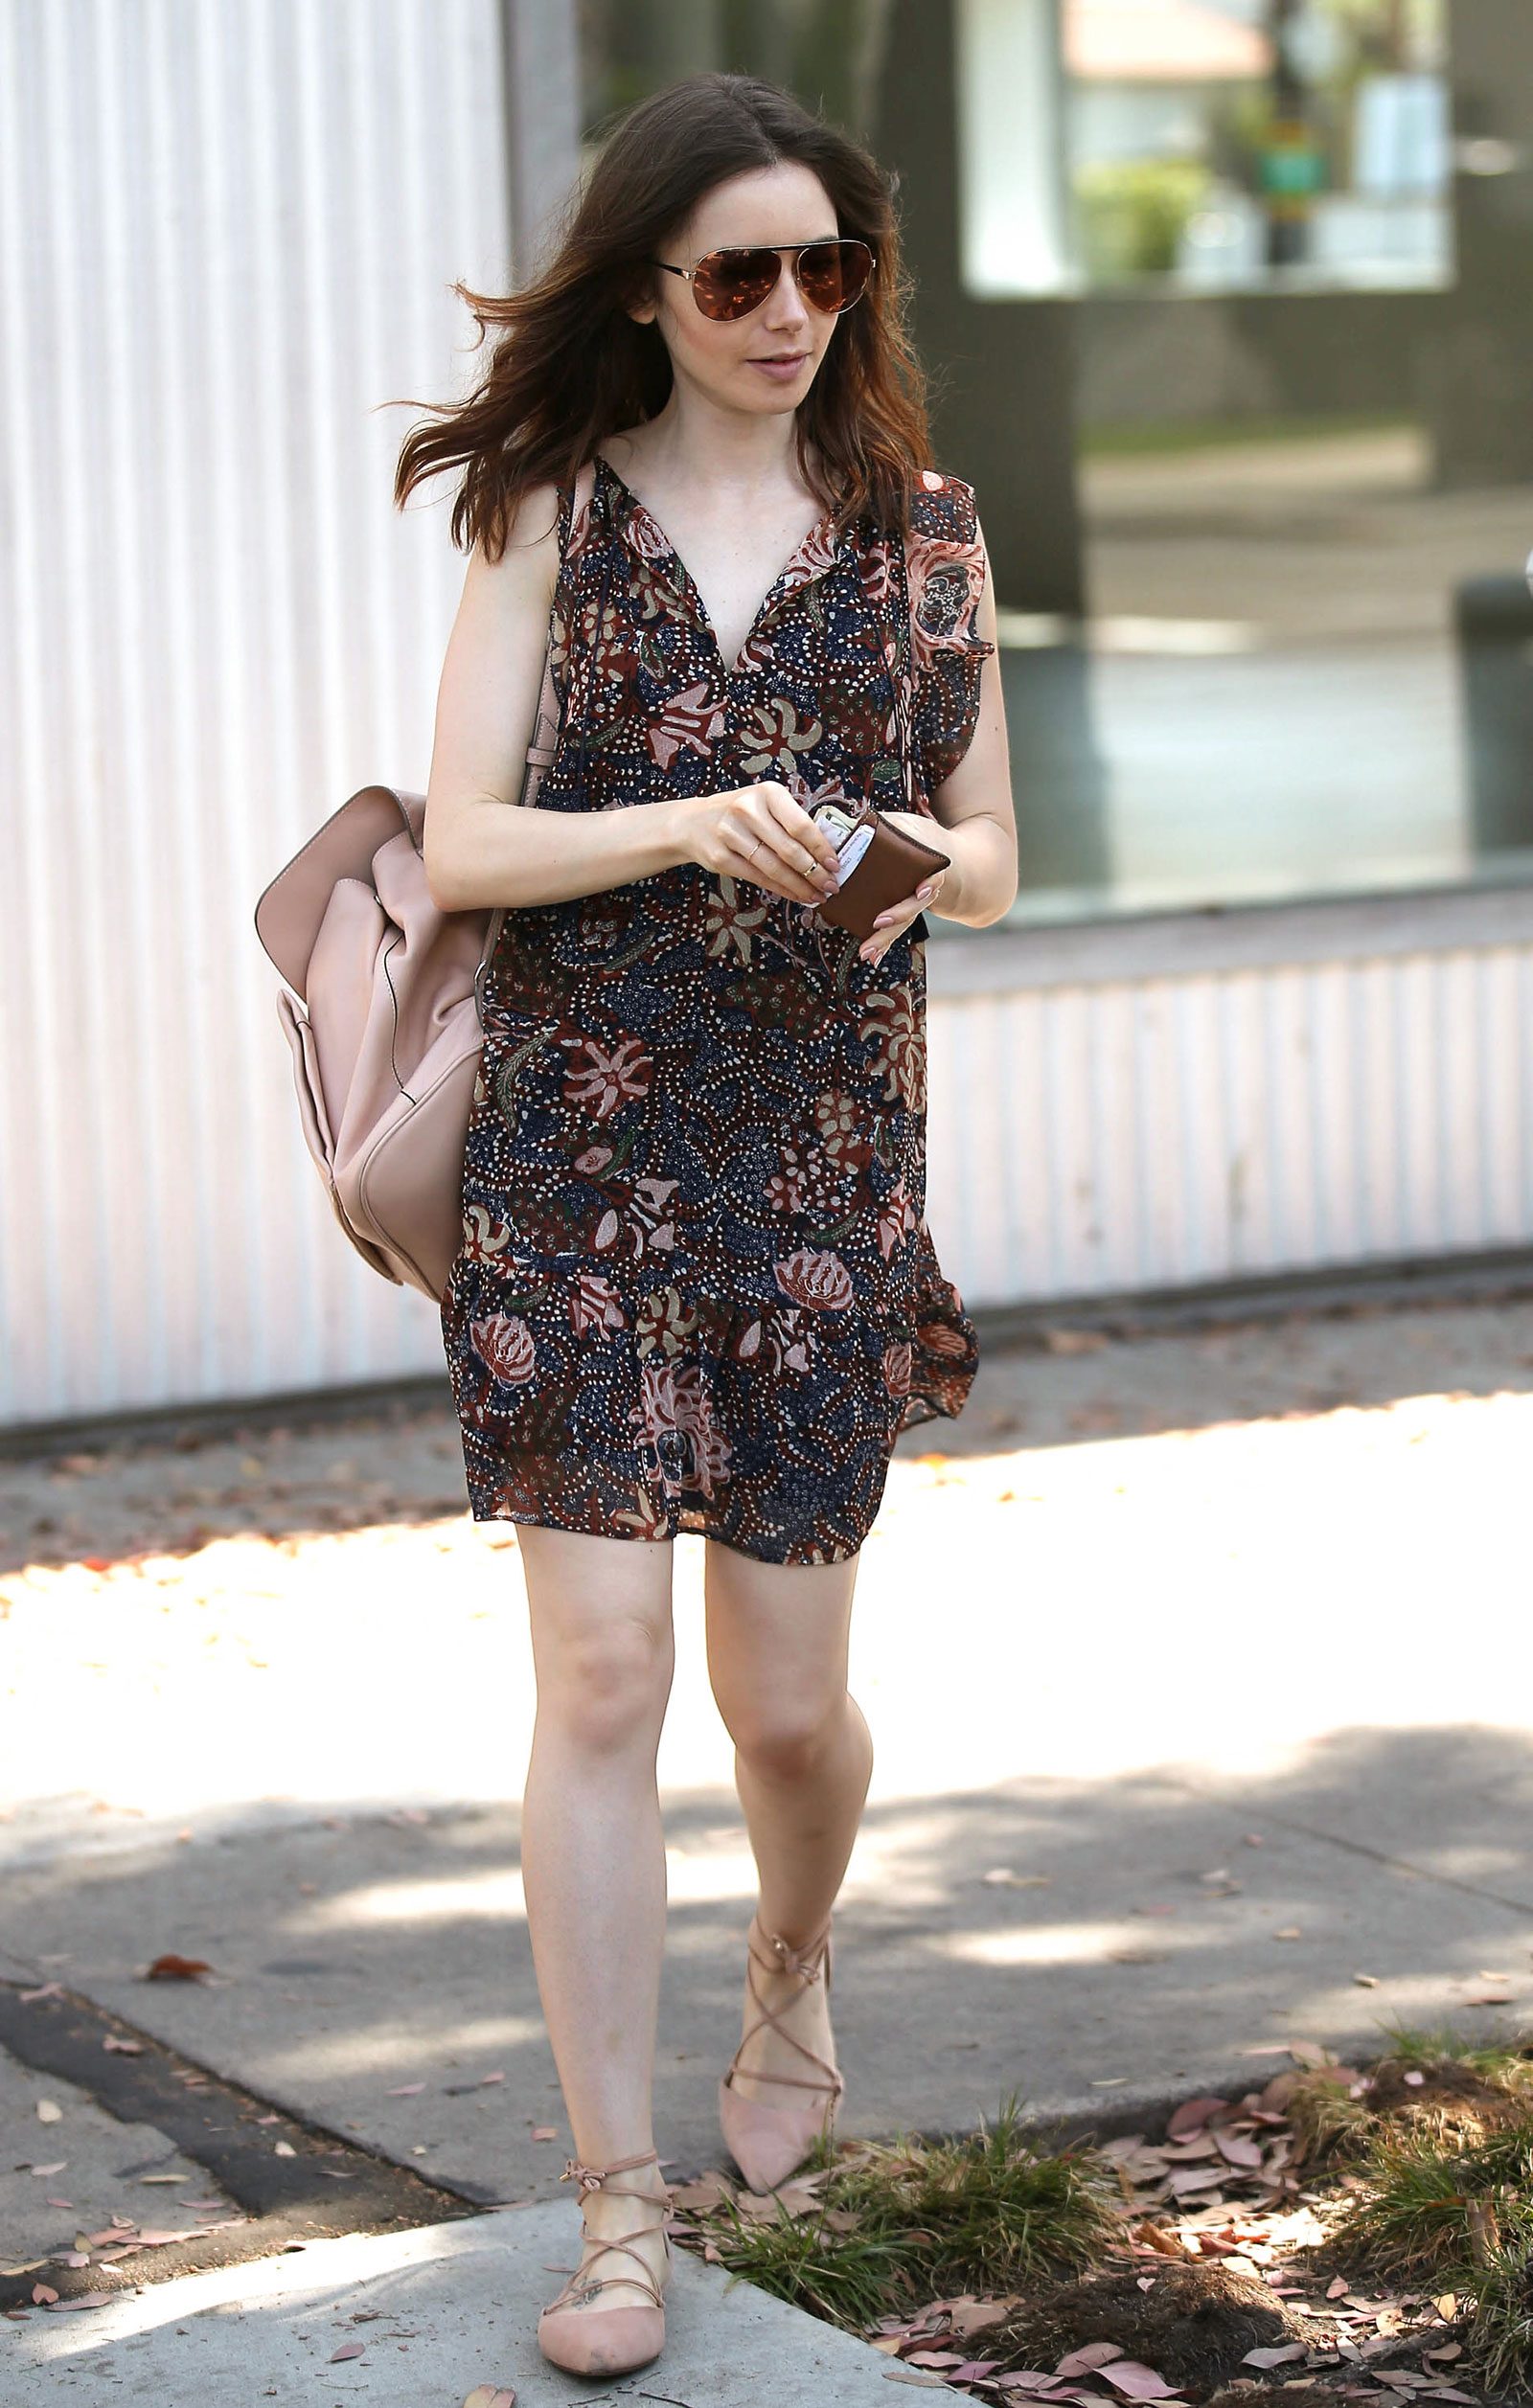 Lily Collins wears the cutest Madewell floral dress (under $100) with blush nude accessories.